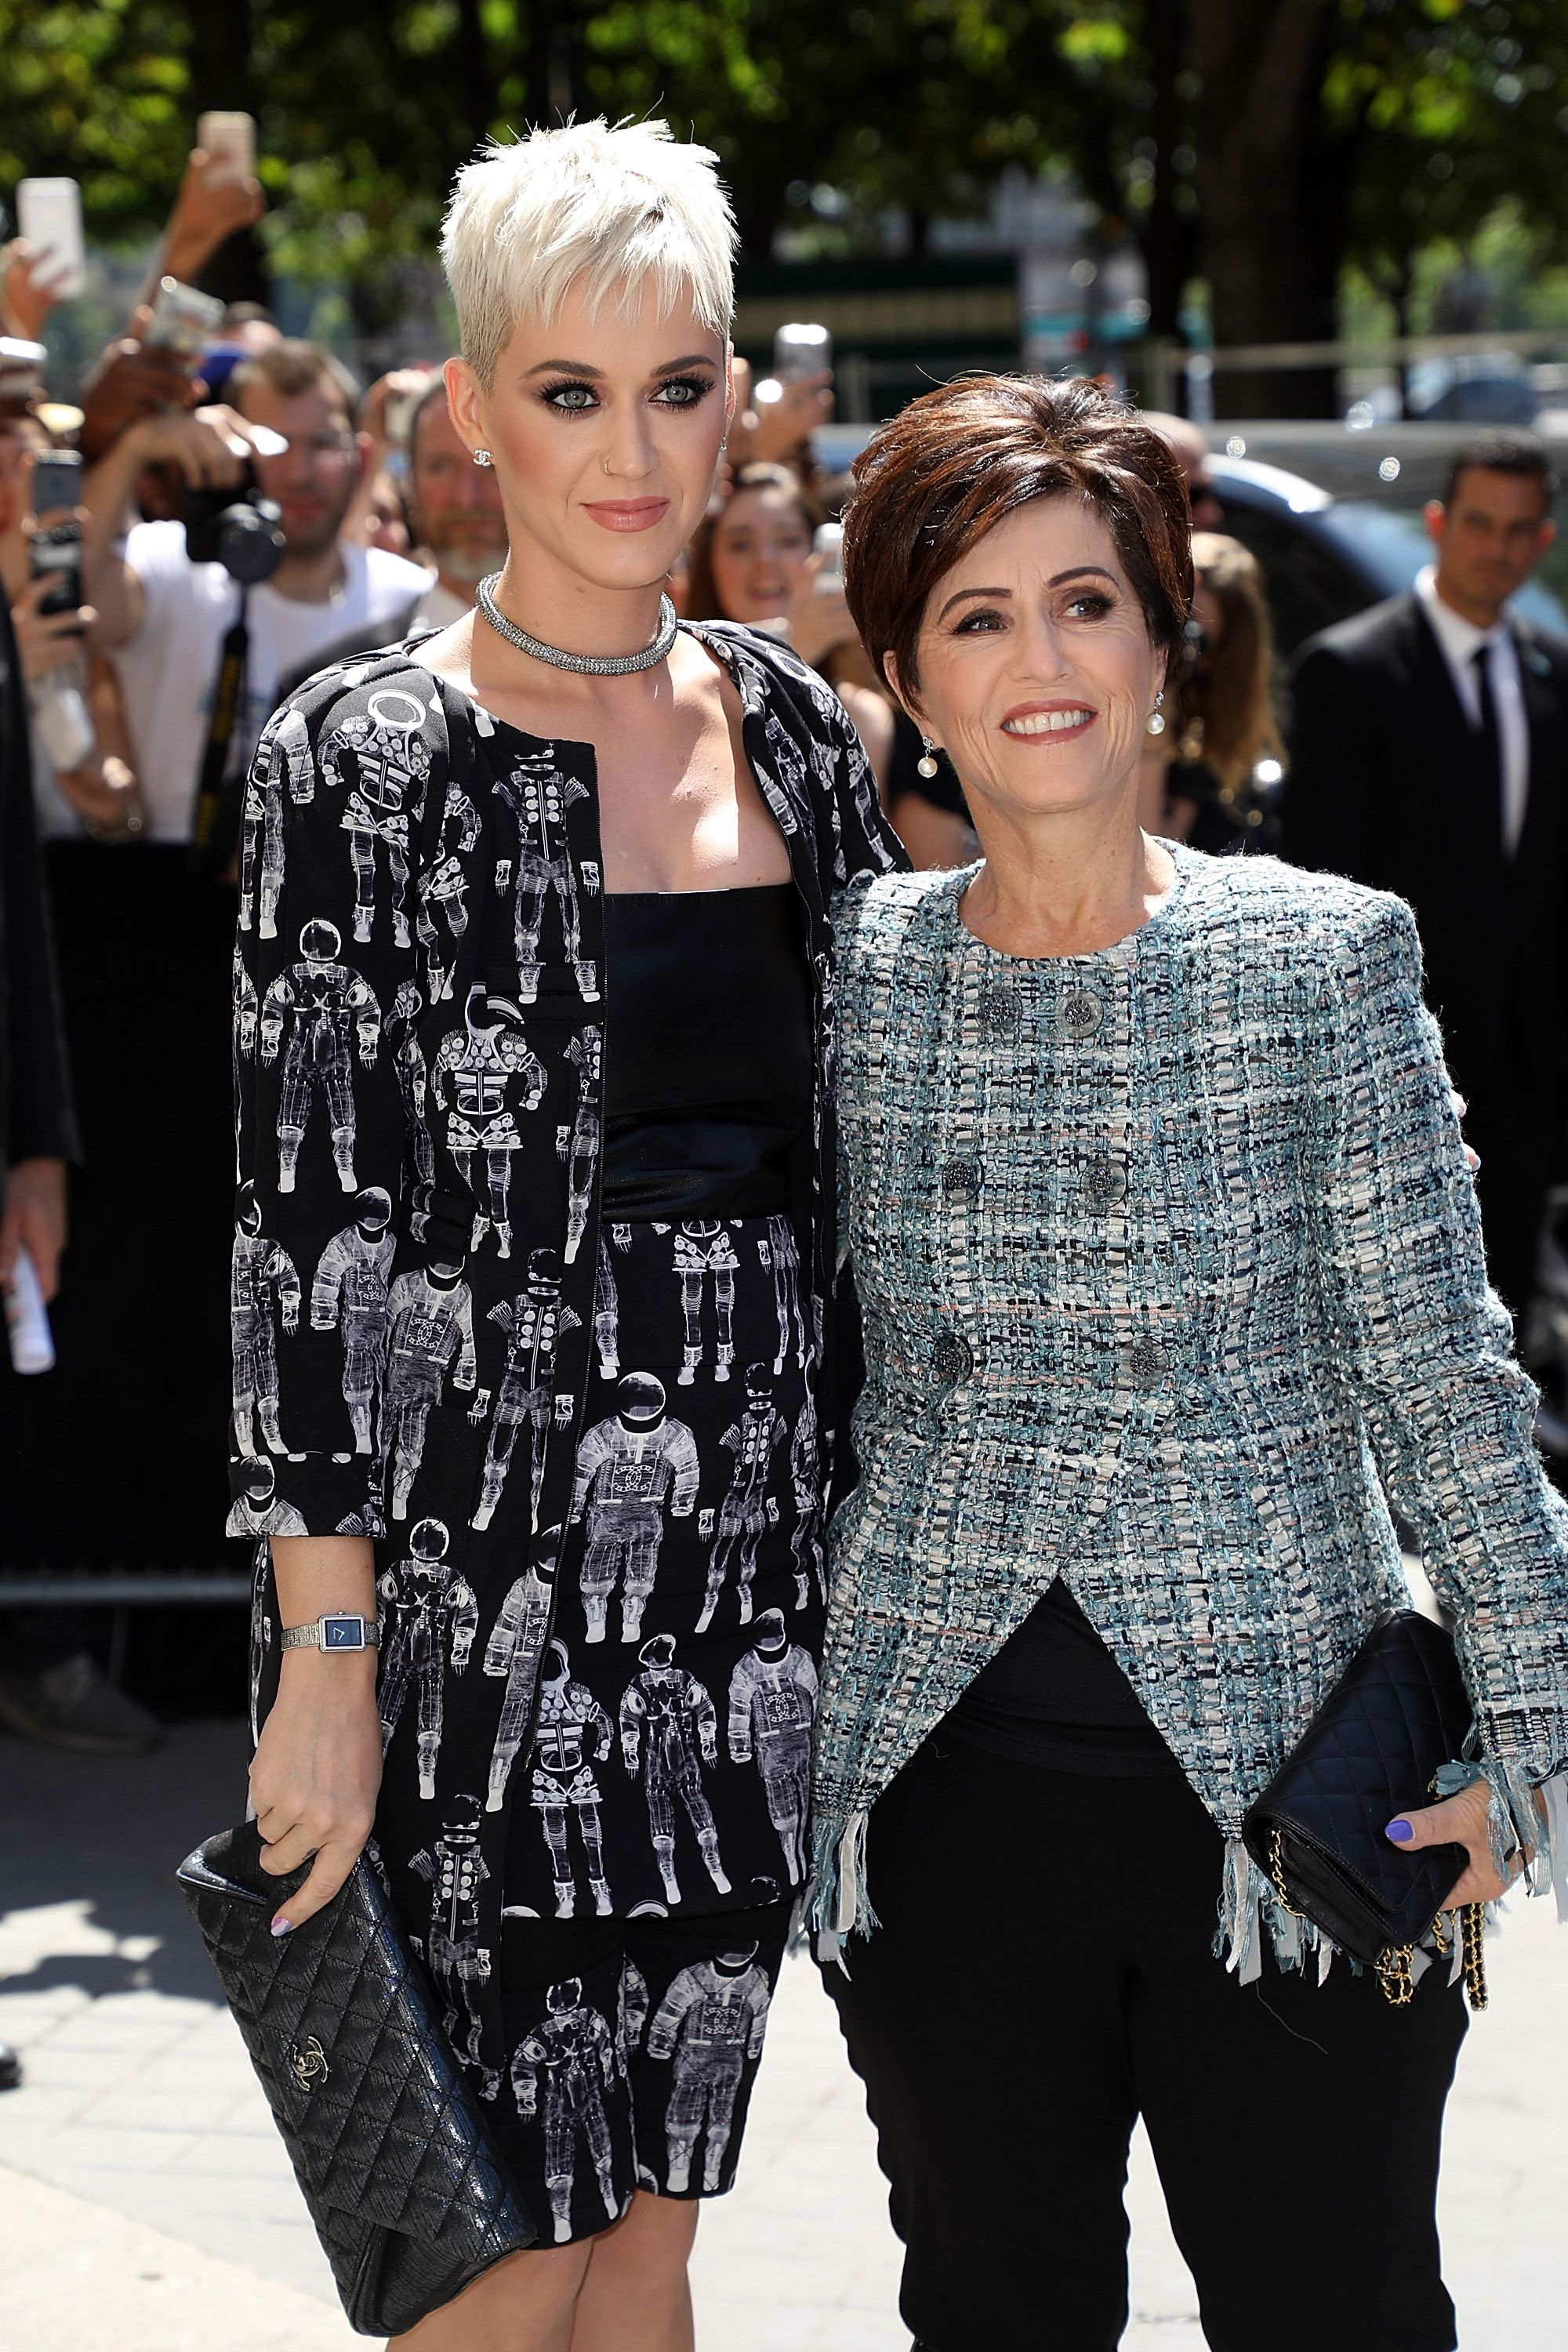 Katy Perry and mom.